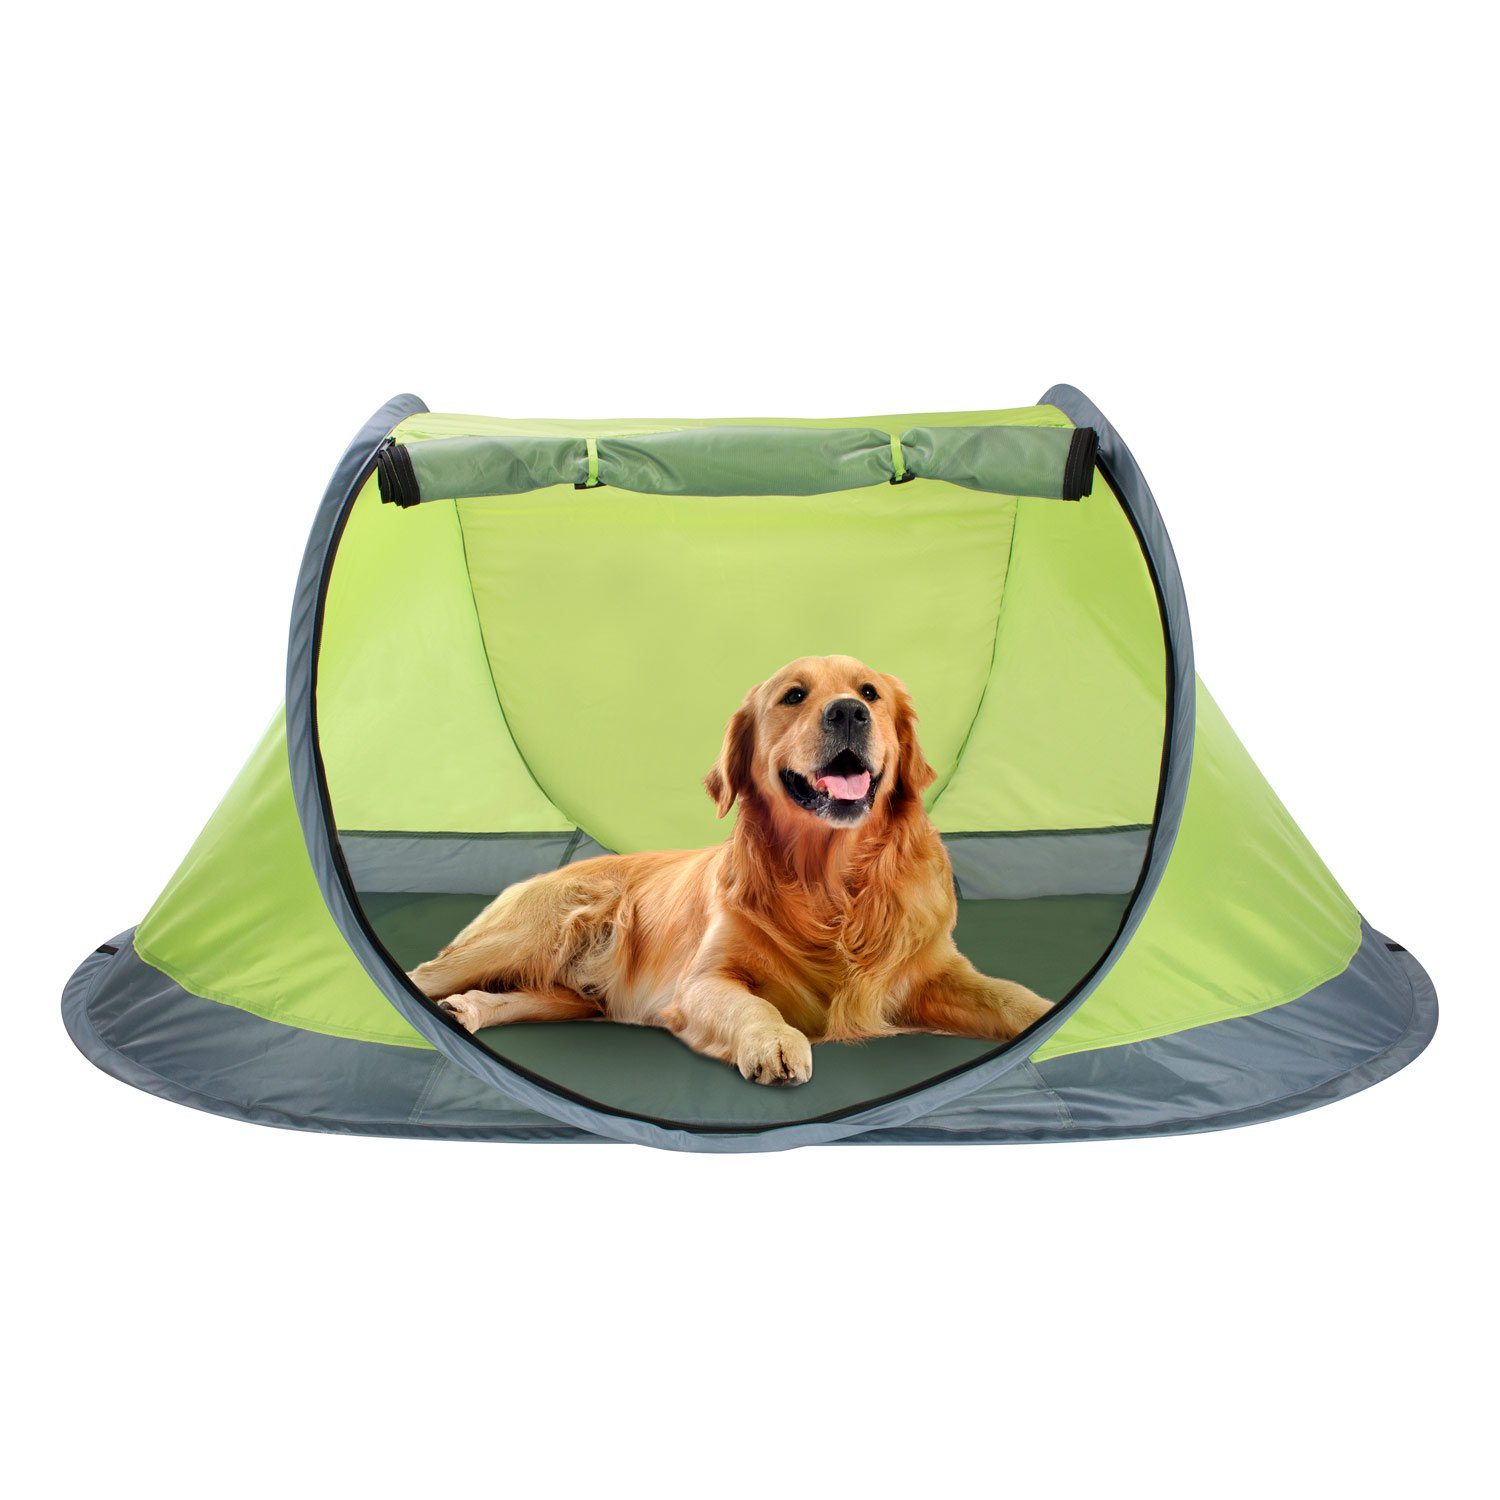 Winterial Outdoor Pop-Up Pet Tent, Dog Tent with 2-Inch Foam Pad, Includes Carry Bag by Winterial